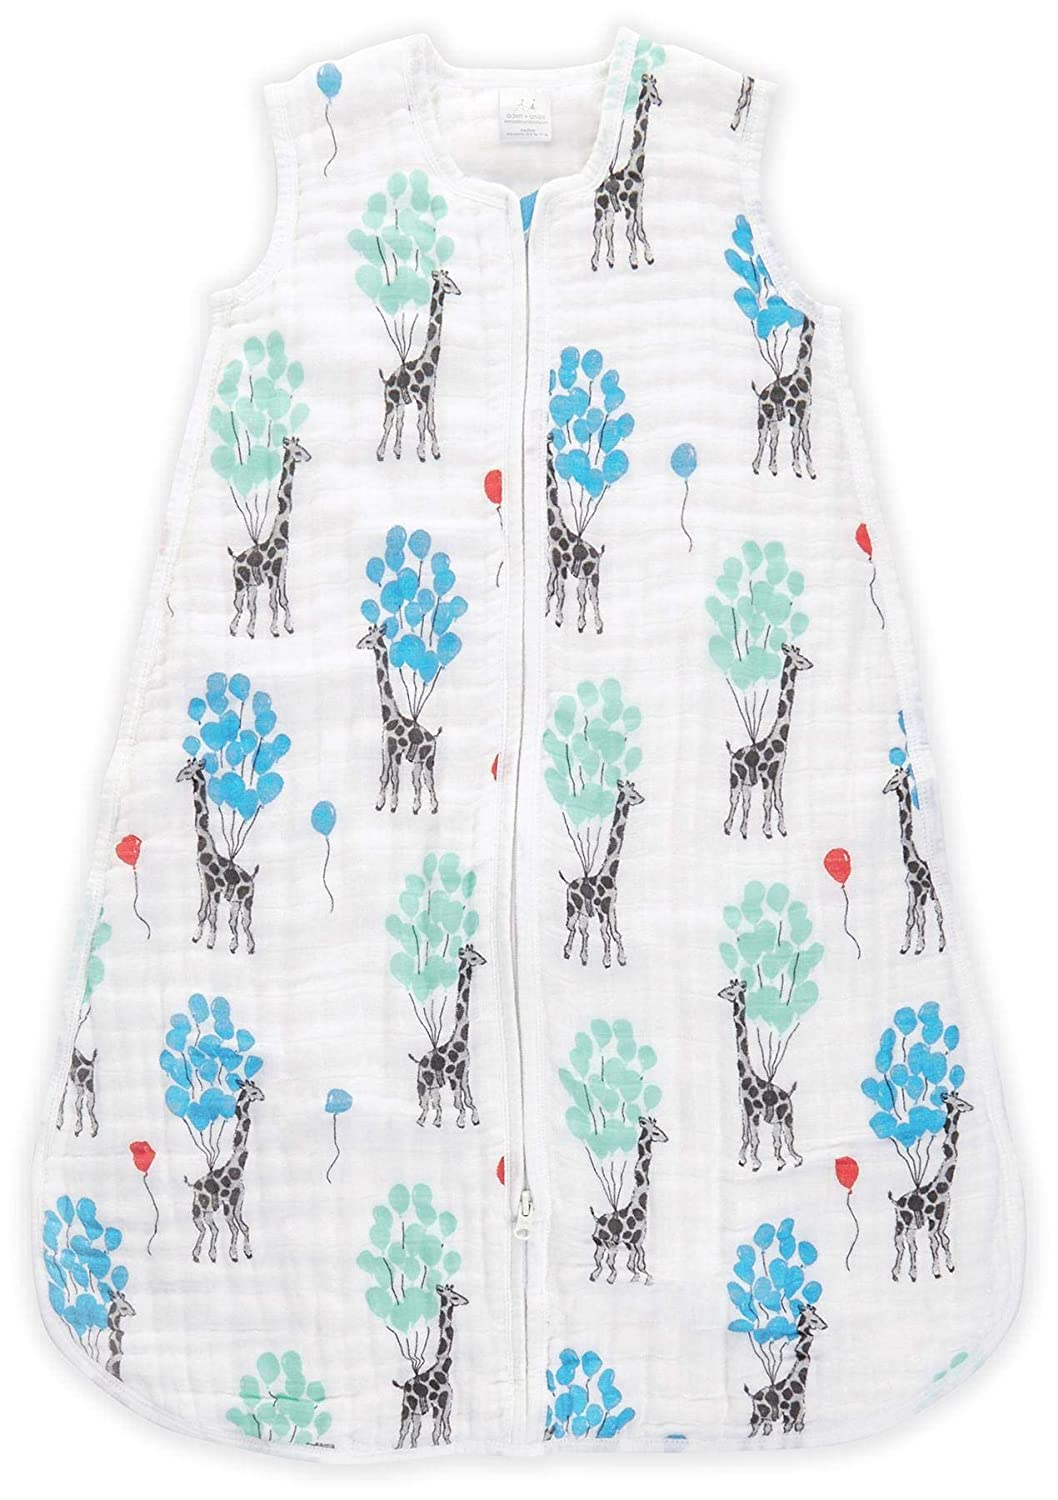 Aden + Anais Dream ride lift off - Saco pijama, 12-18 meses ...